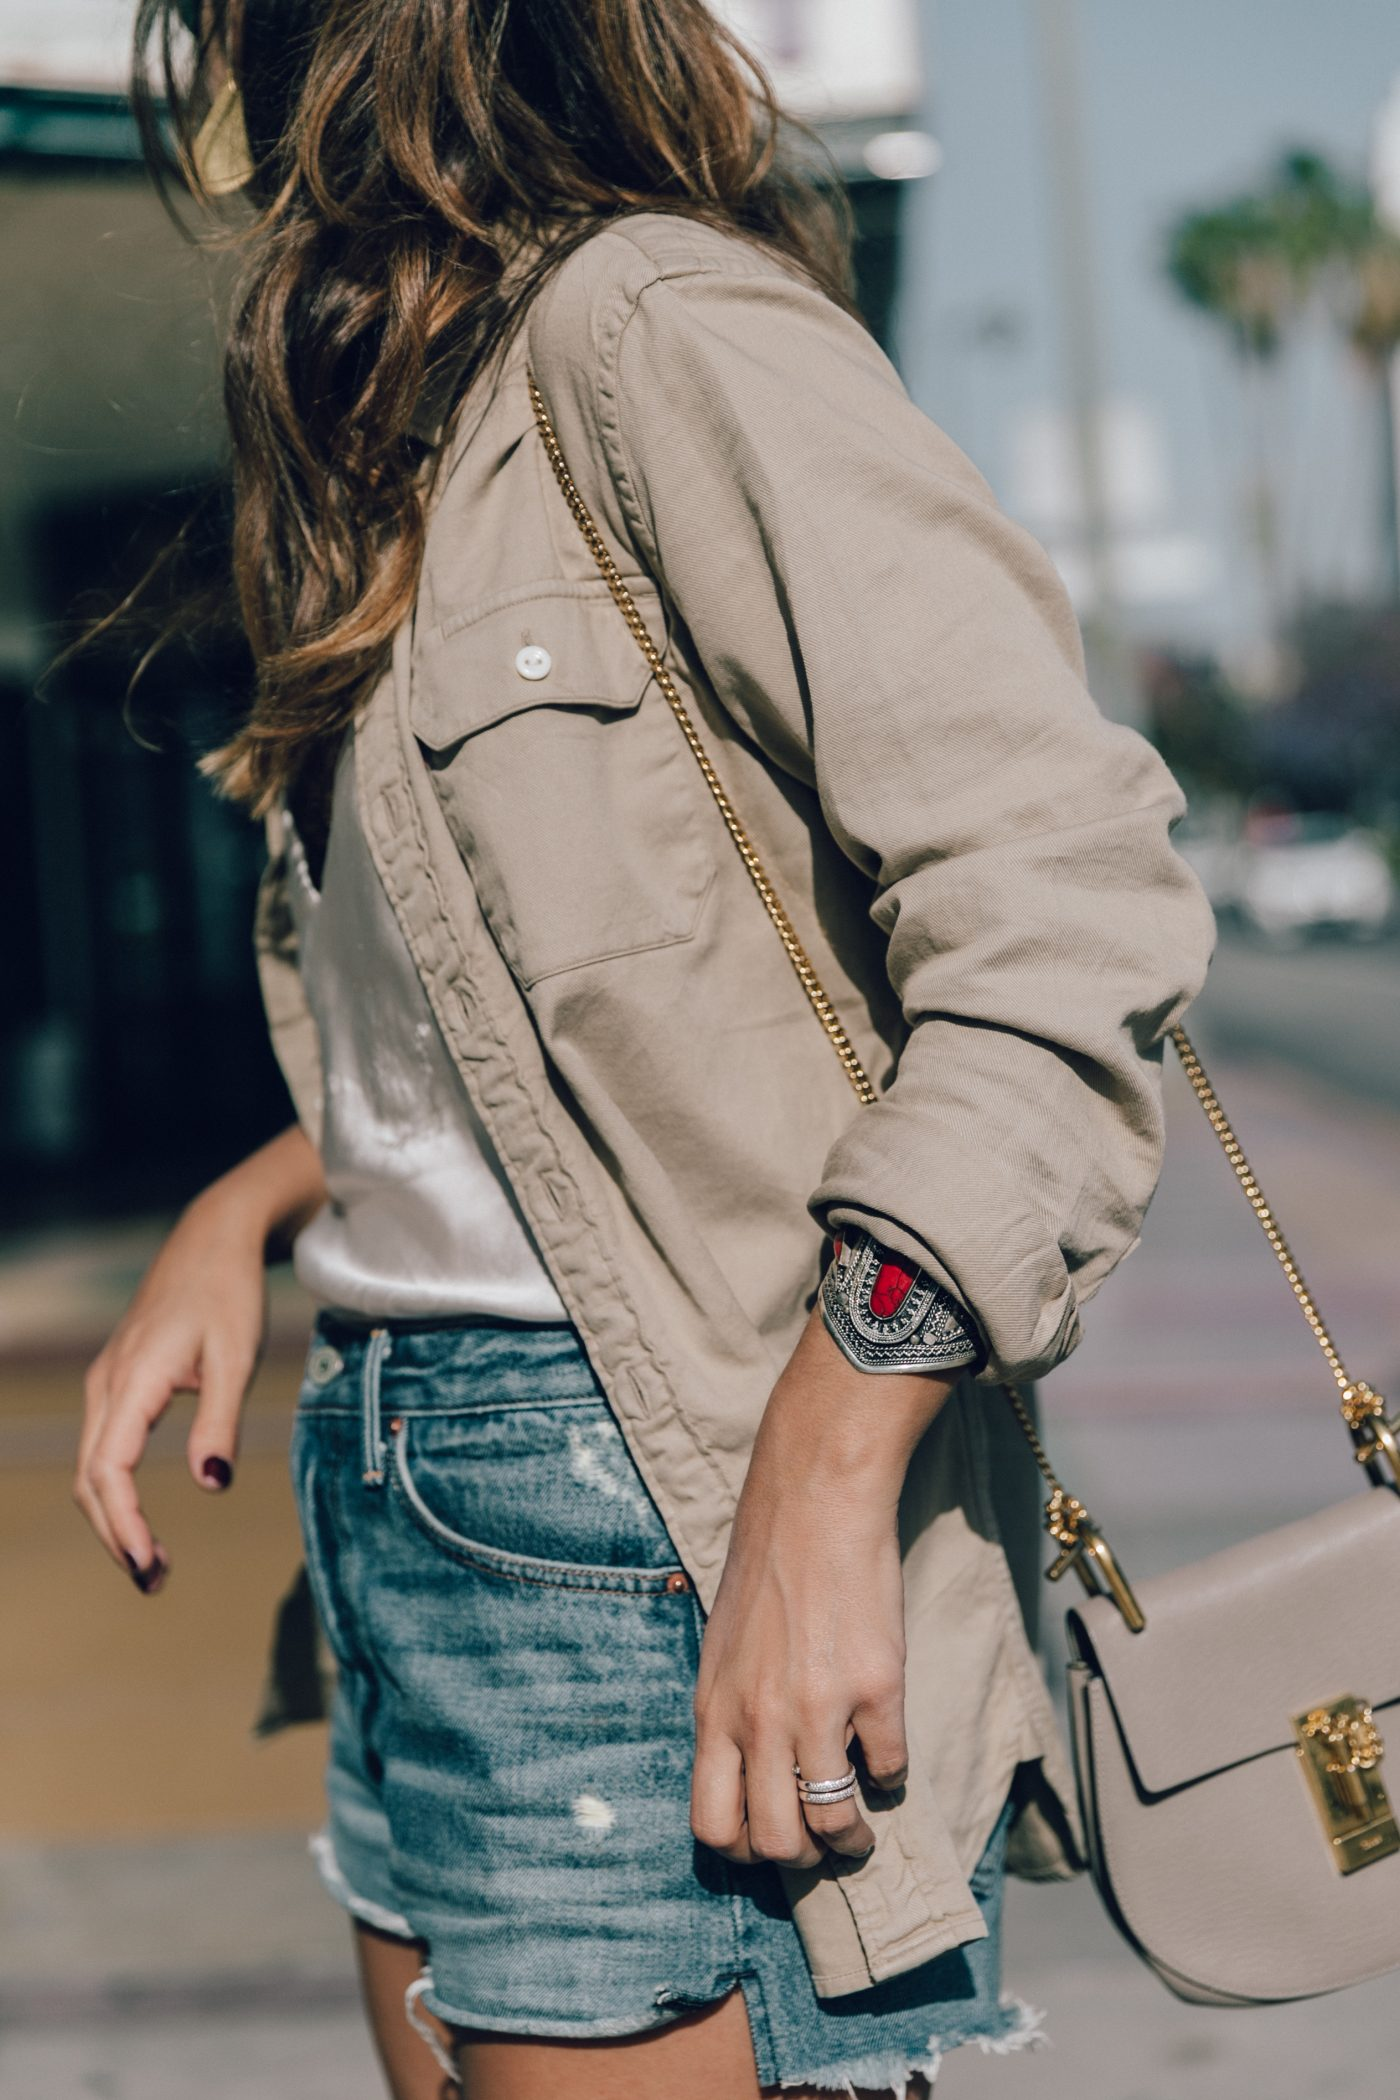 Levis_Shirt-GRLFRND_Denim-Chloe_Bag-Los_Angeles-Shorts-Outfit-Street_Style-Ray_Ban-Street_Style-Collage_Vintage-24